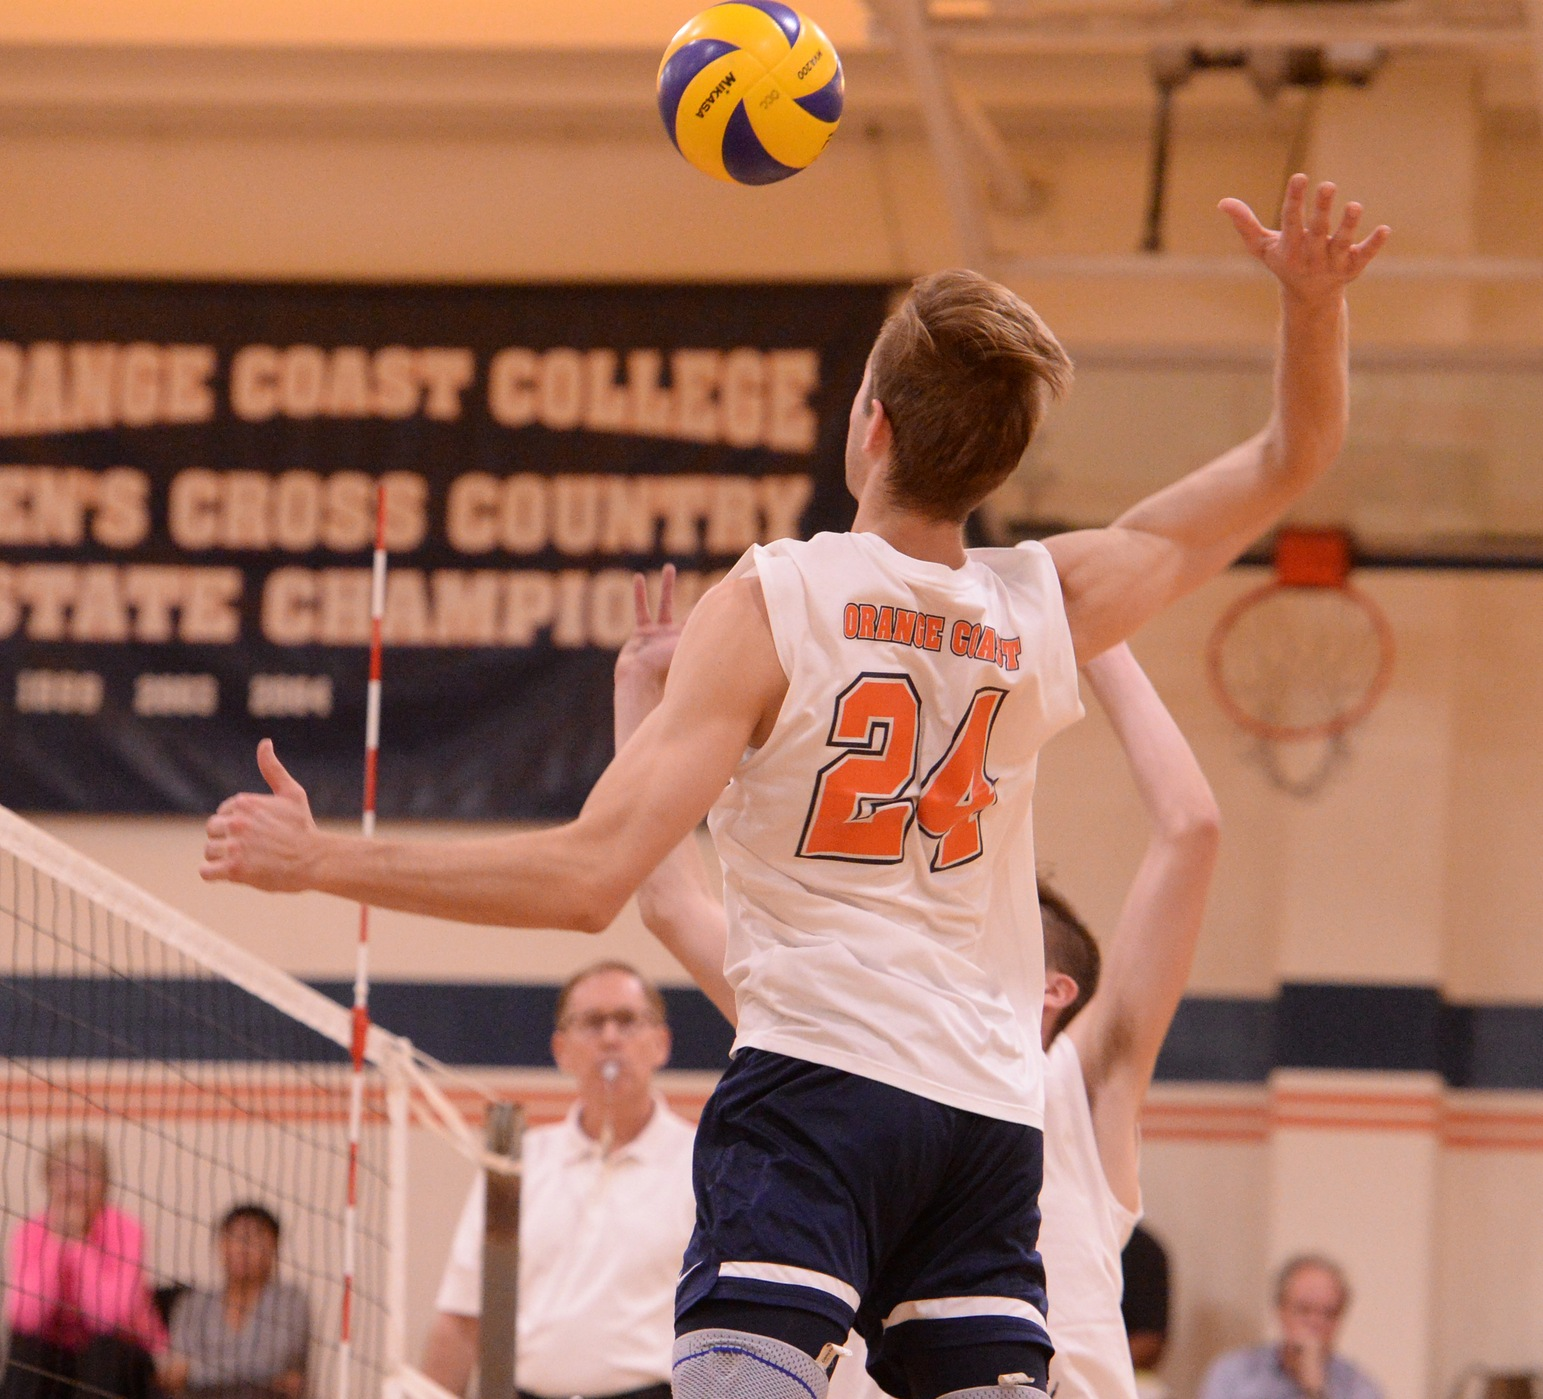 Pirates keep Jets grounded in three-set sweep